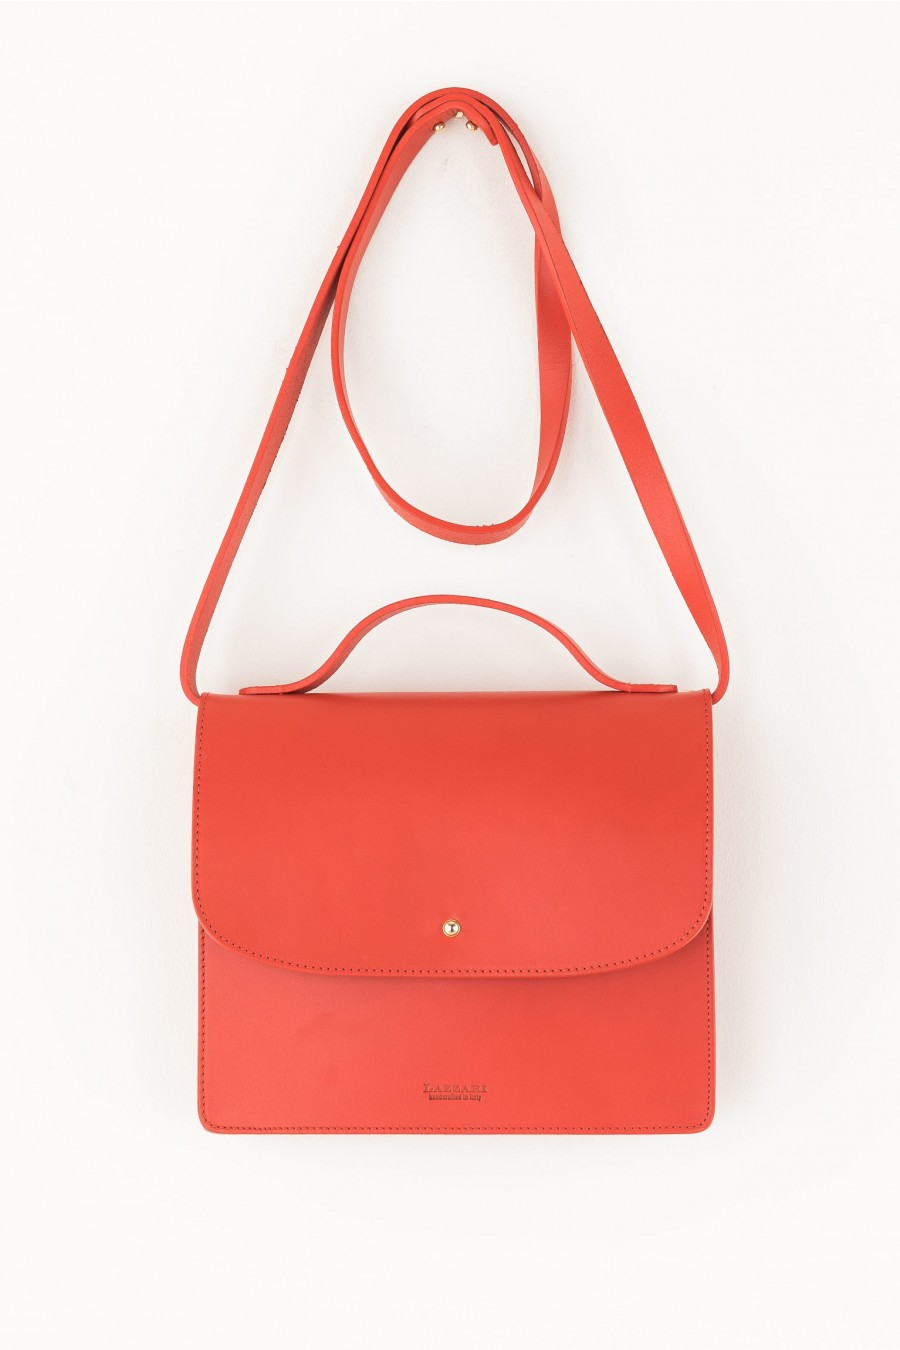 Coral bag with adjustable strap